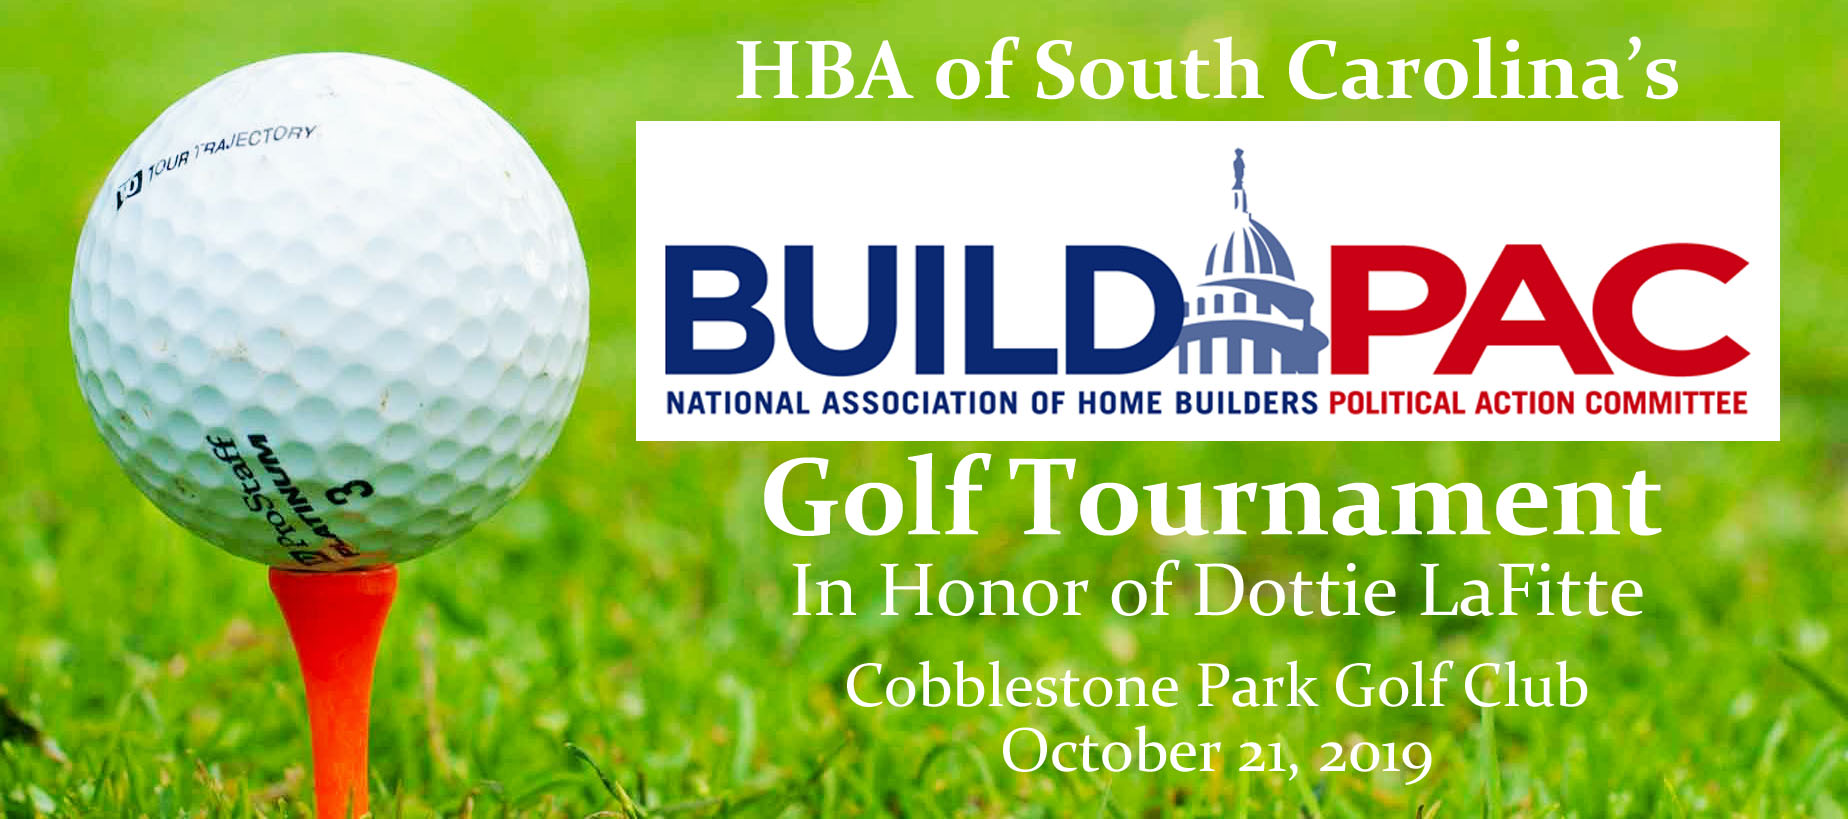 BUILD-PAC Golf Tournament